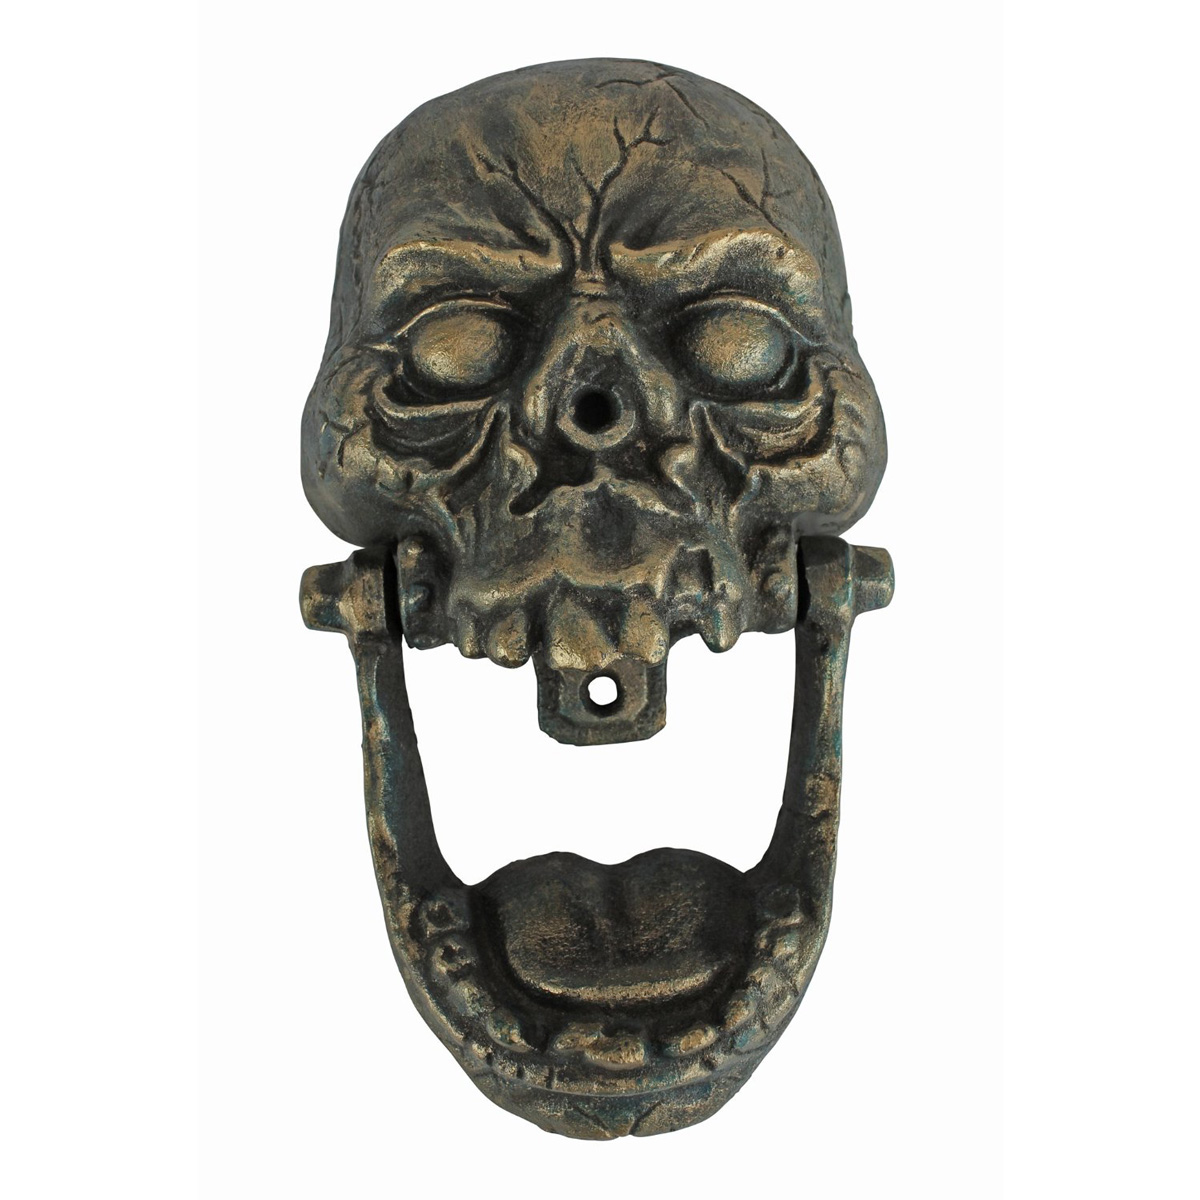 Knock Jaw Cast Iron Skull Door Knocker The Green Head